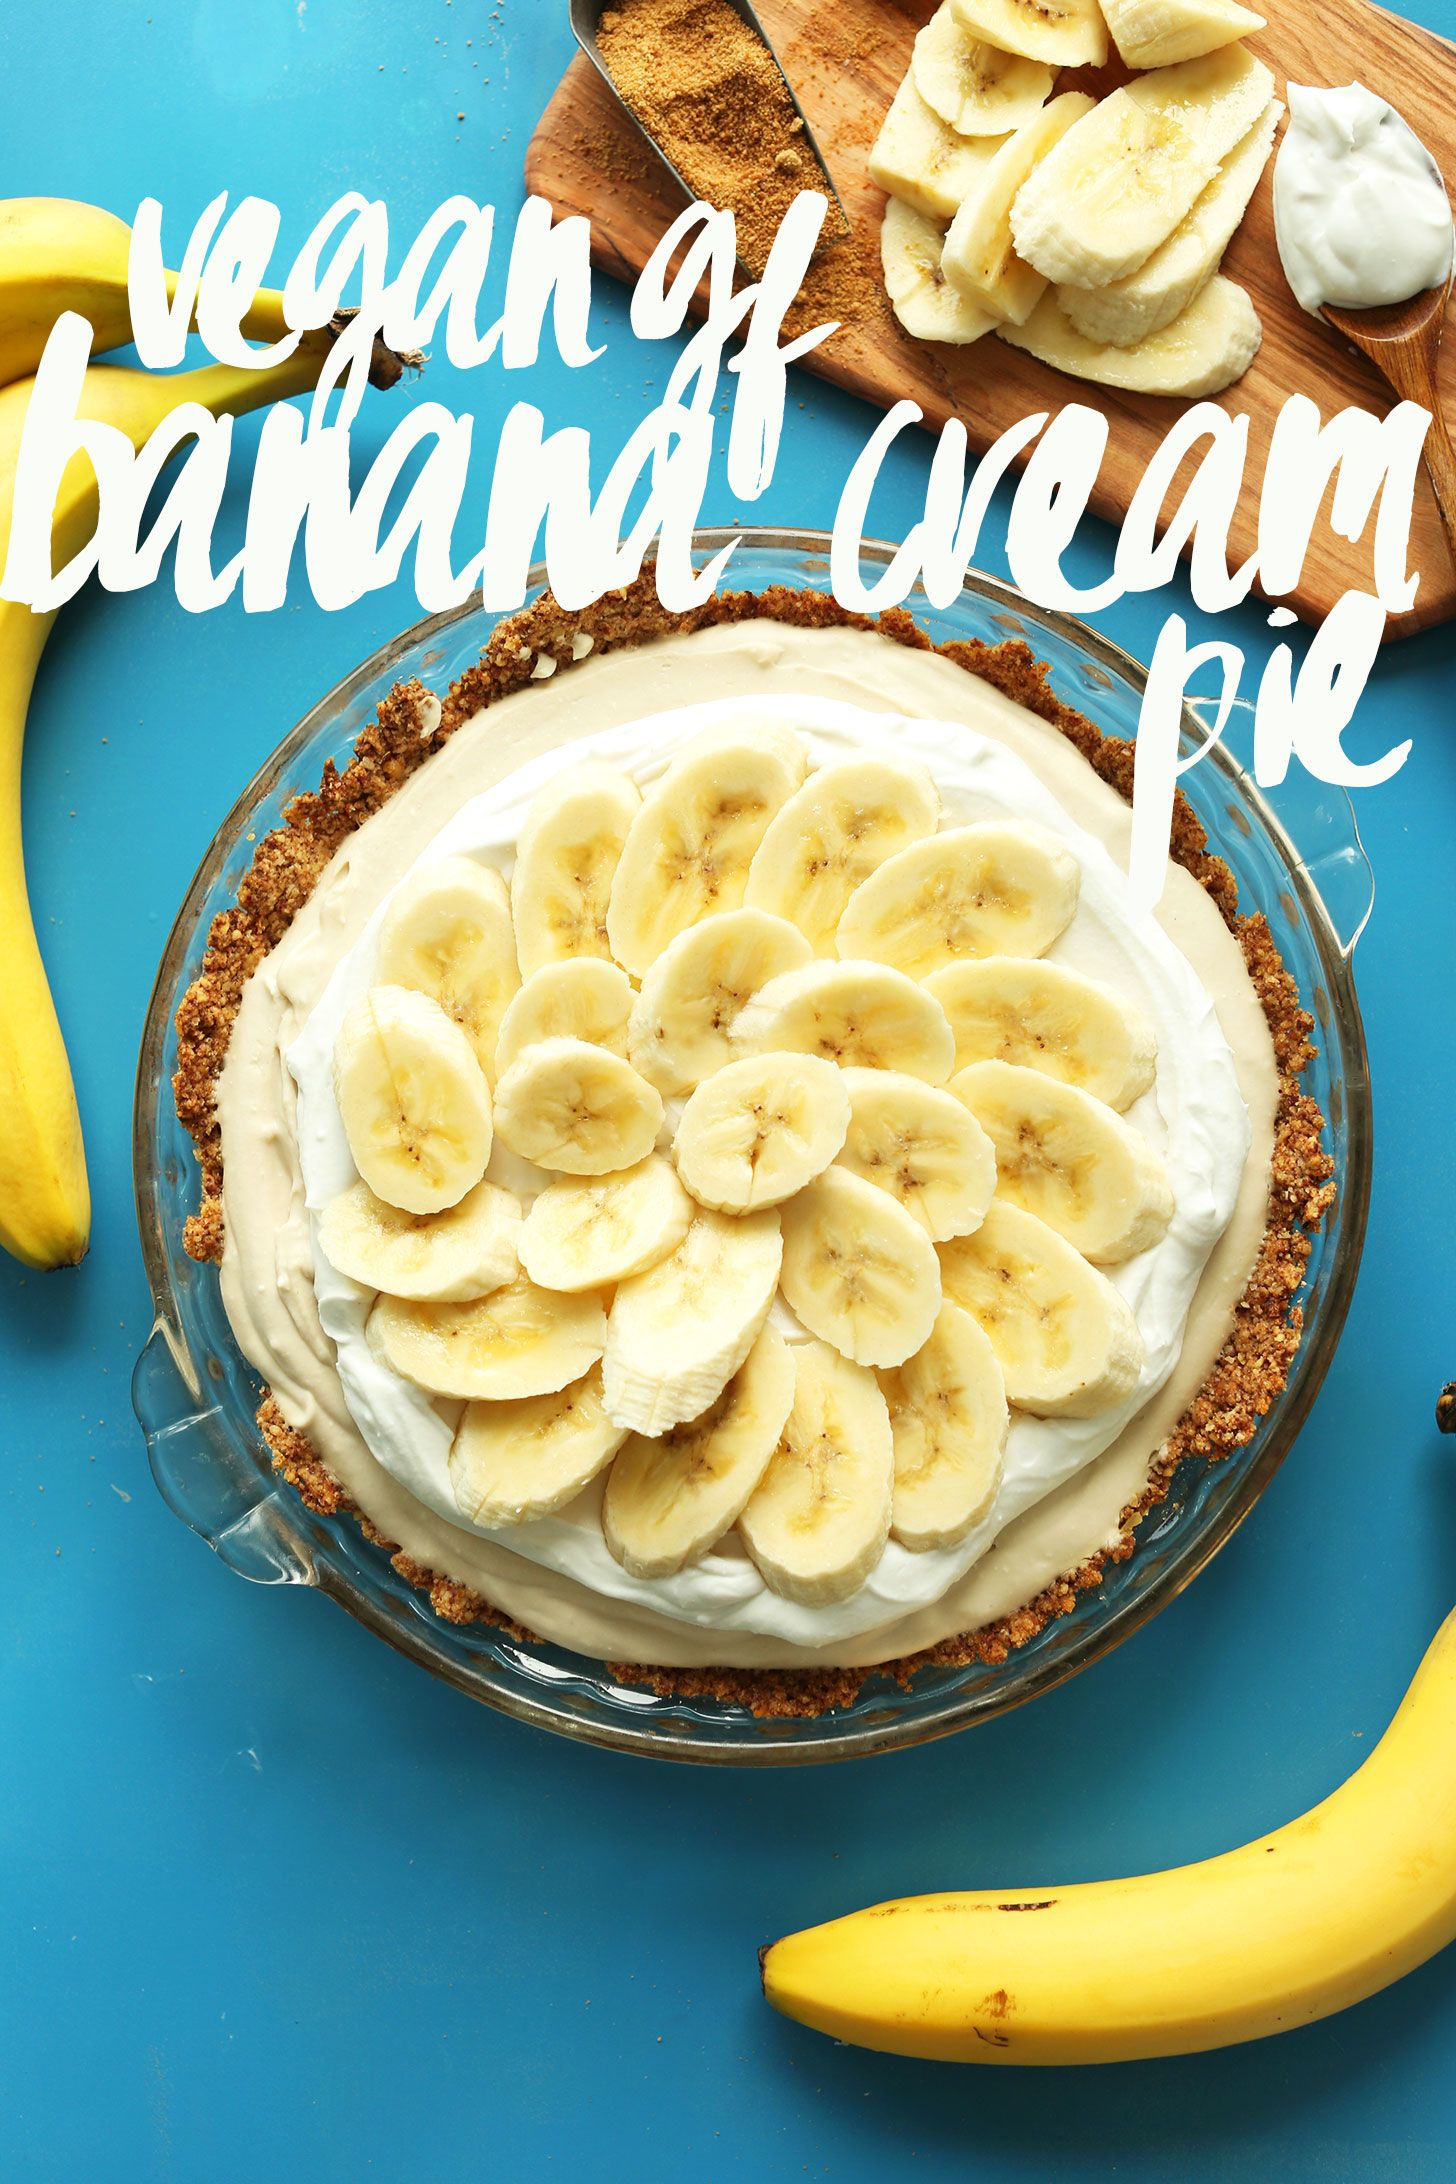 Vegan Banana Cream Pie Minimalist Baker Recipes Recipe Banana Cream Pie Desserts Vegan Desserts